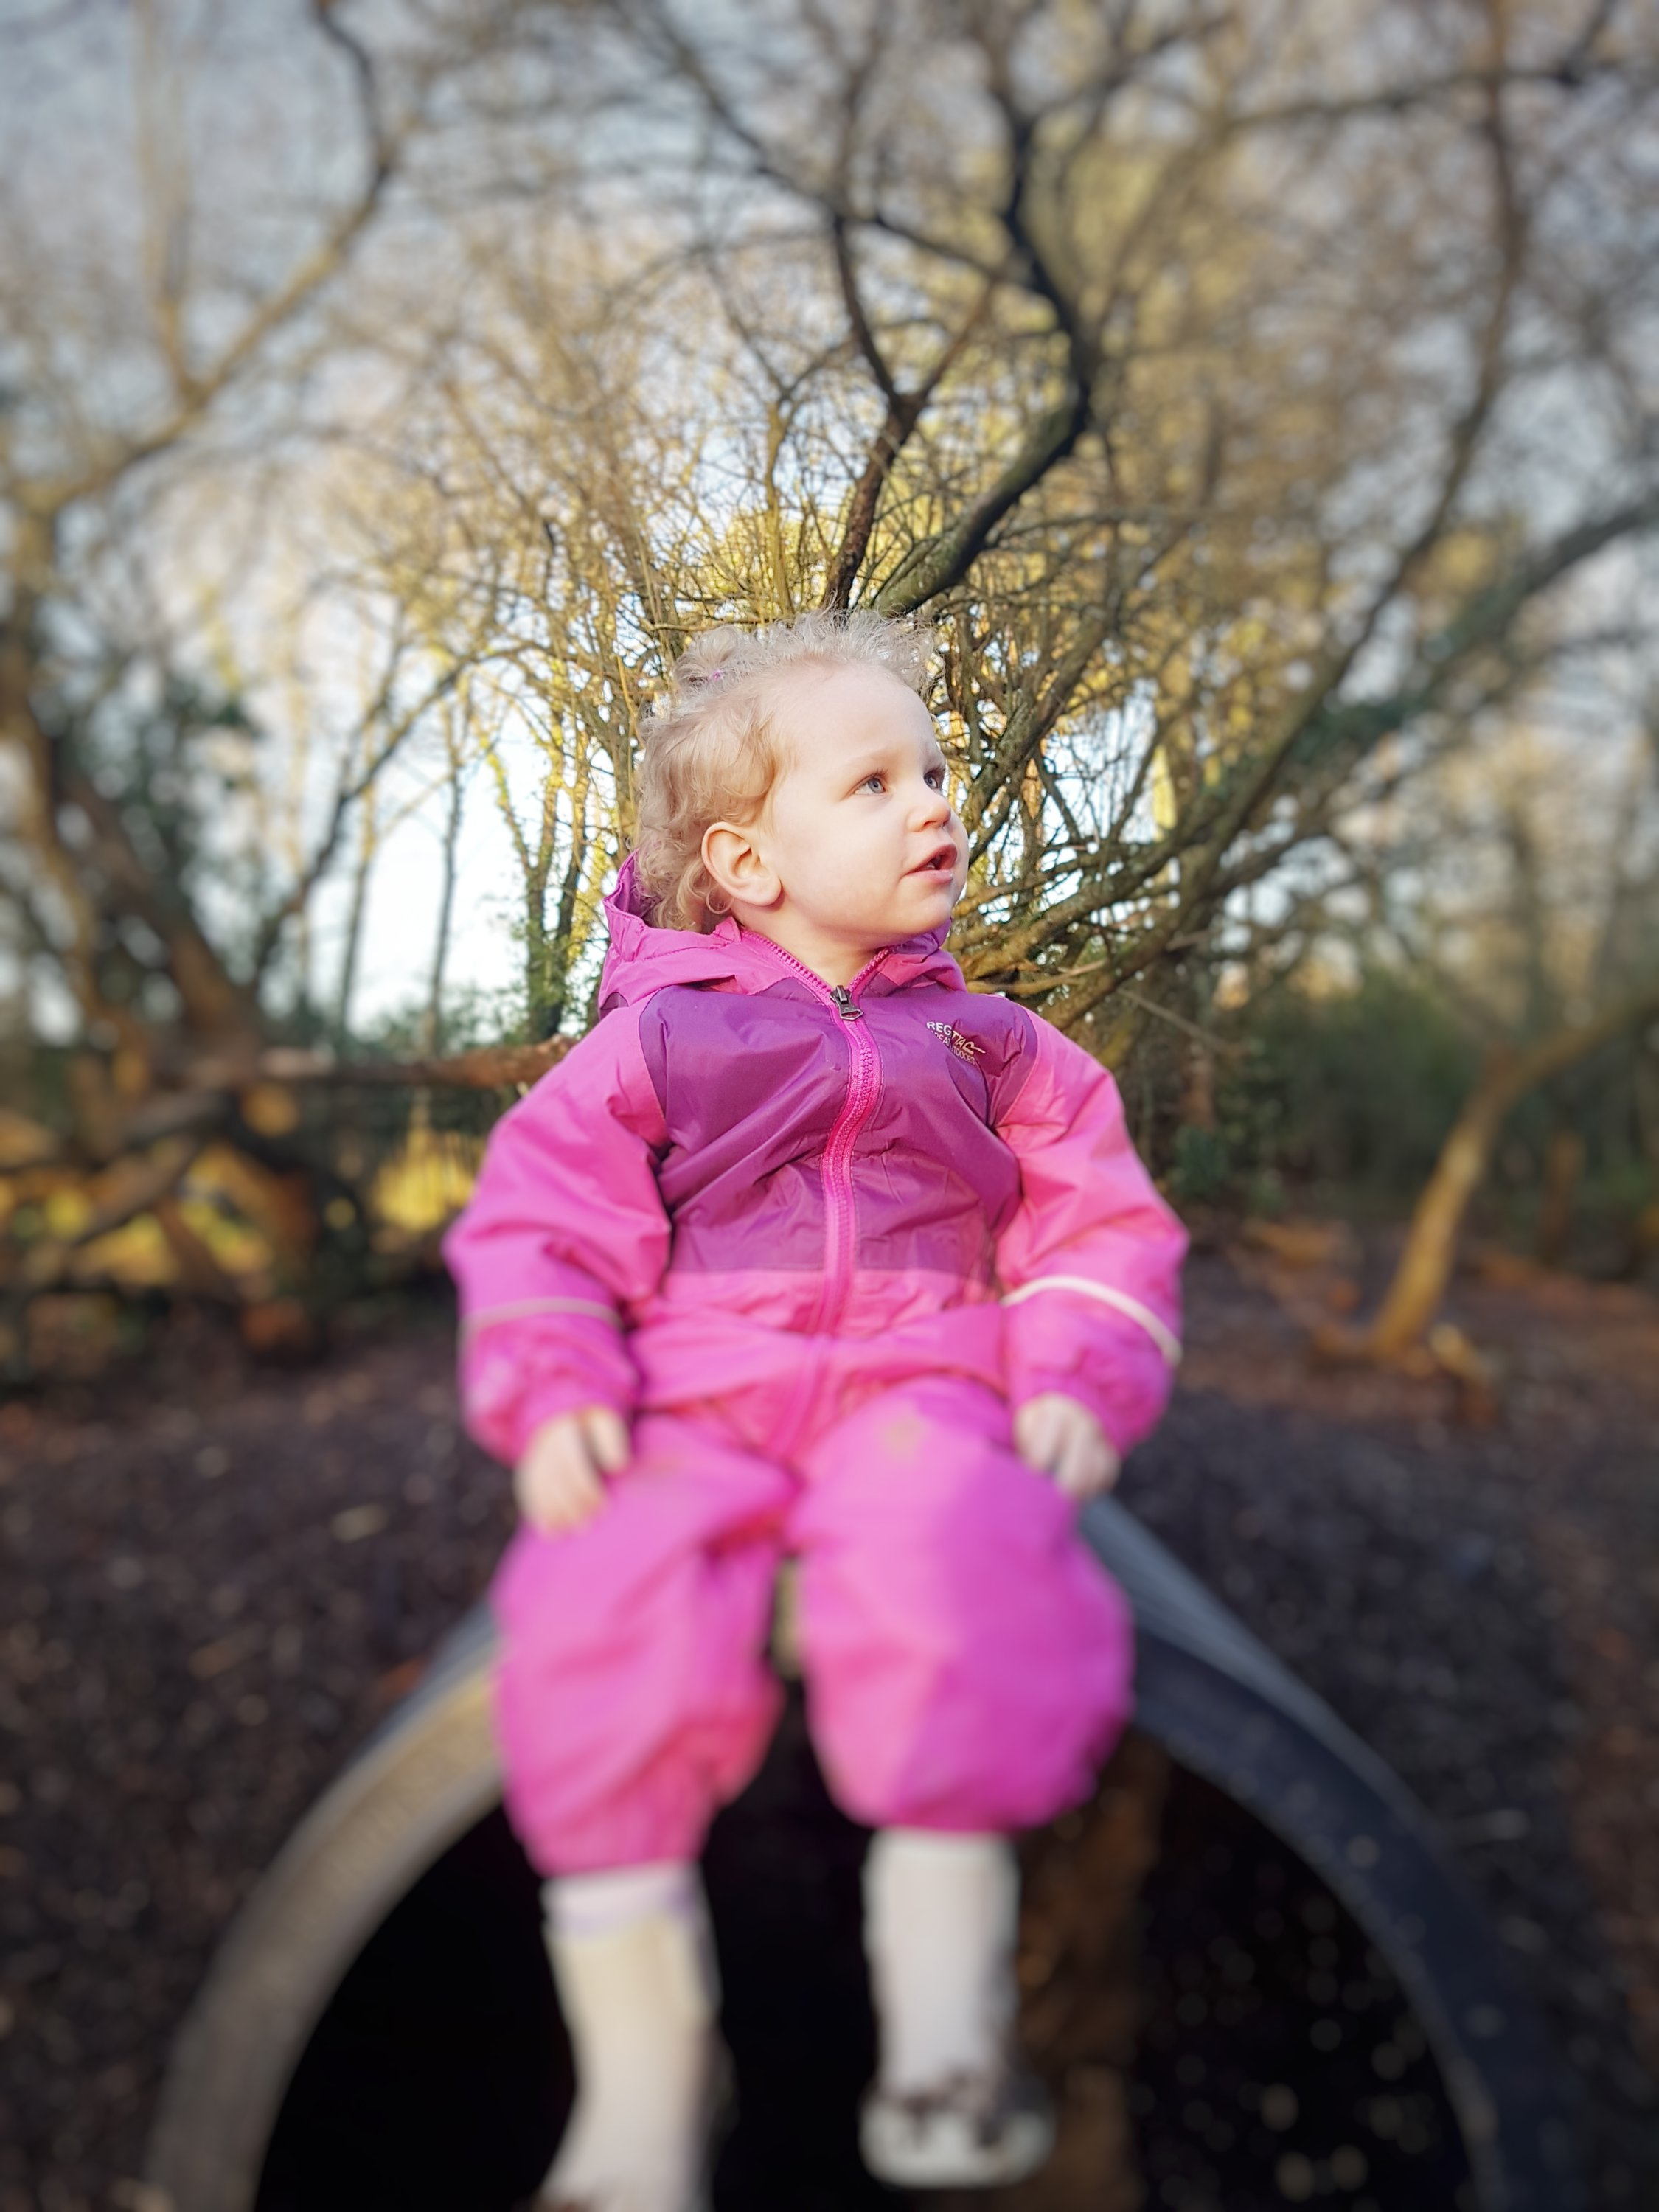 Alyssia looking up, love this one!